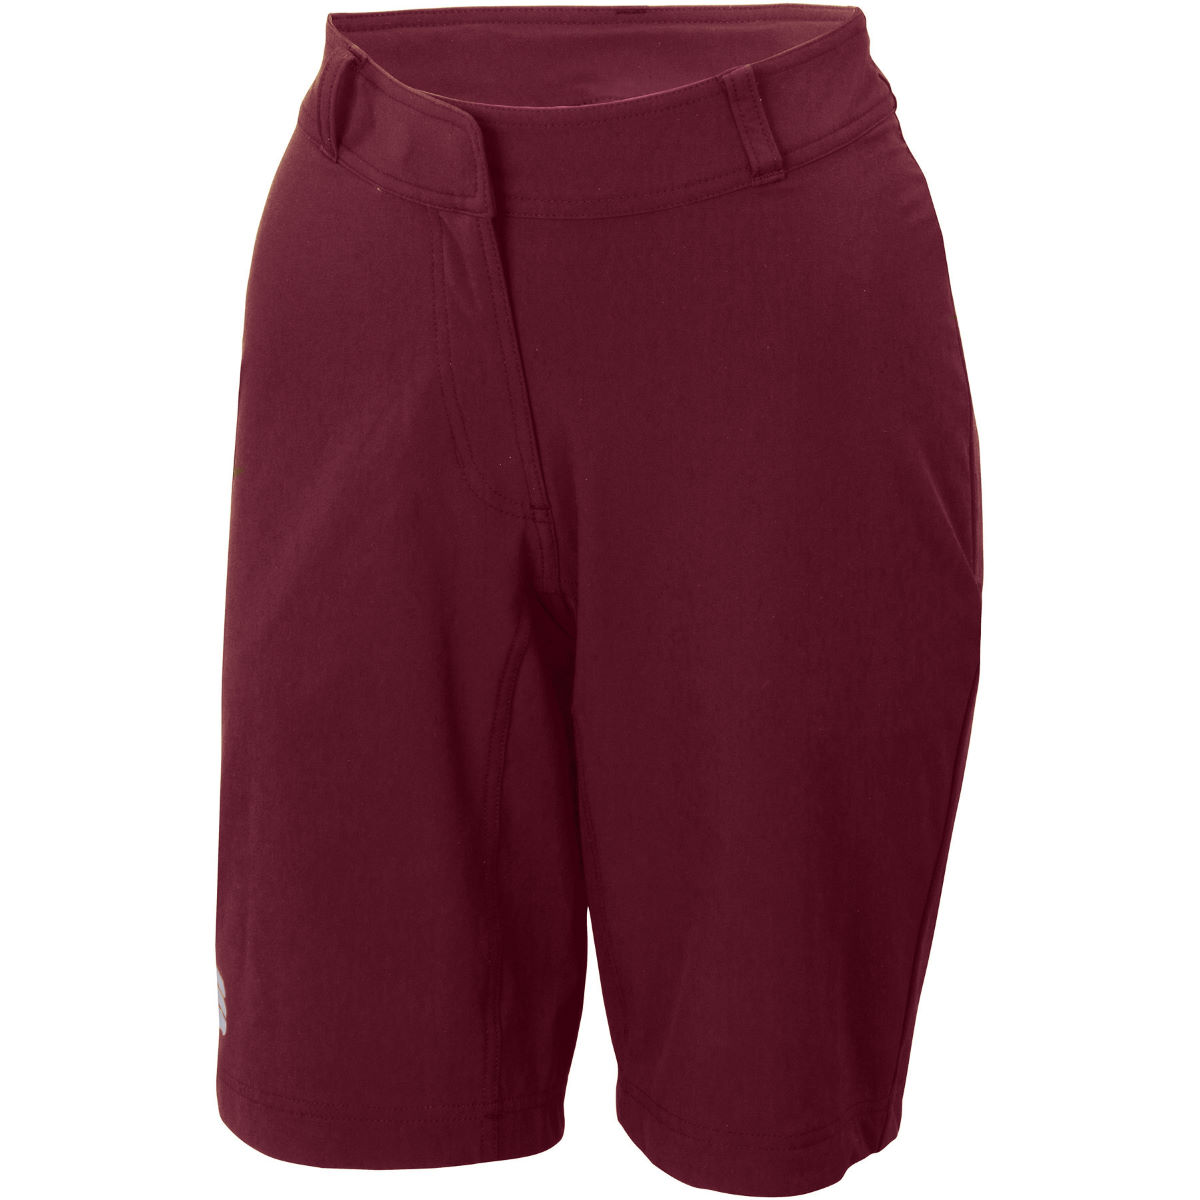 Sportful Womens Giara Over Shorts - L Red Wine  Baggy Shorts